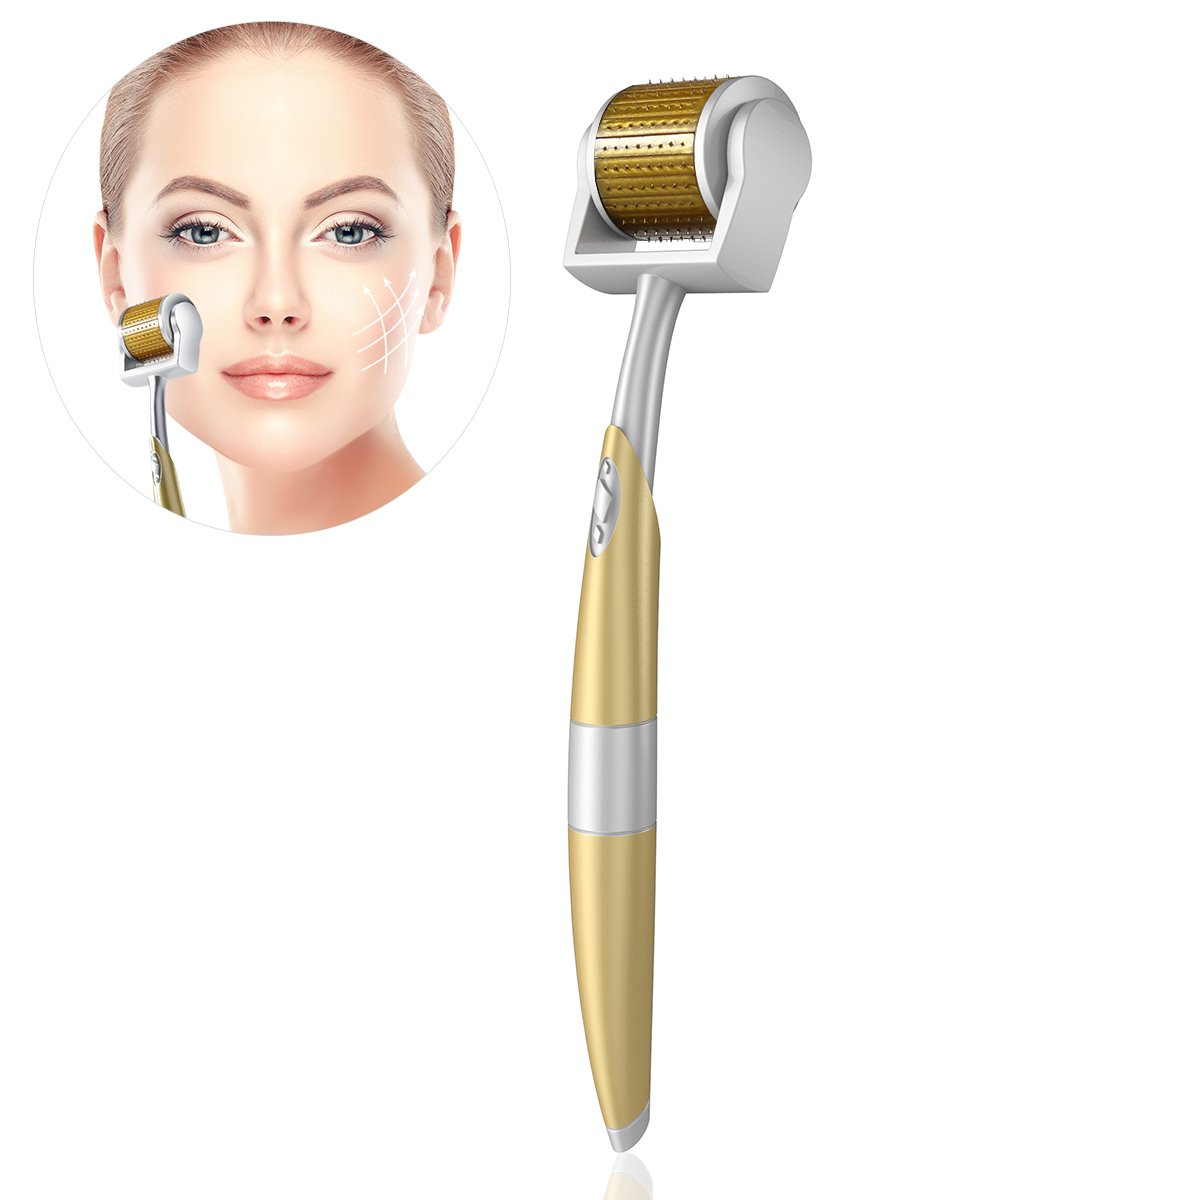 TinkSky Derma Roller - 0.5mm 192 Needles Stainless Steel- Micro Needle Roller Medical Grade for Reducing Fine Wrinkles, Cellulite, Acne Scars, Stretch Marks and More